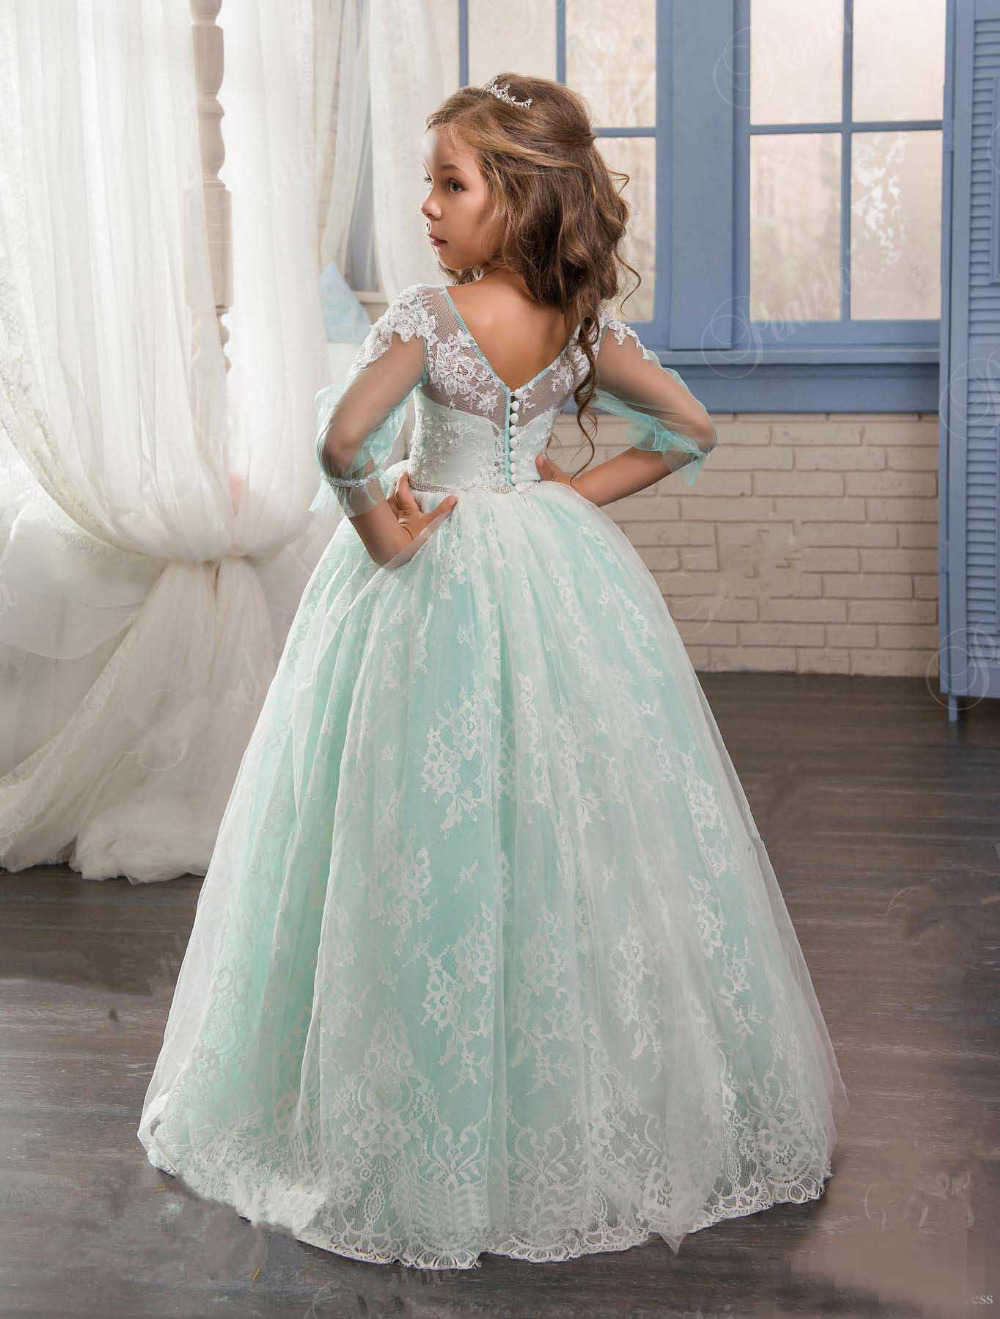 Magnificent Kid Wedding Dress Adornment - All Wedding Dresses ...